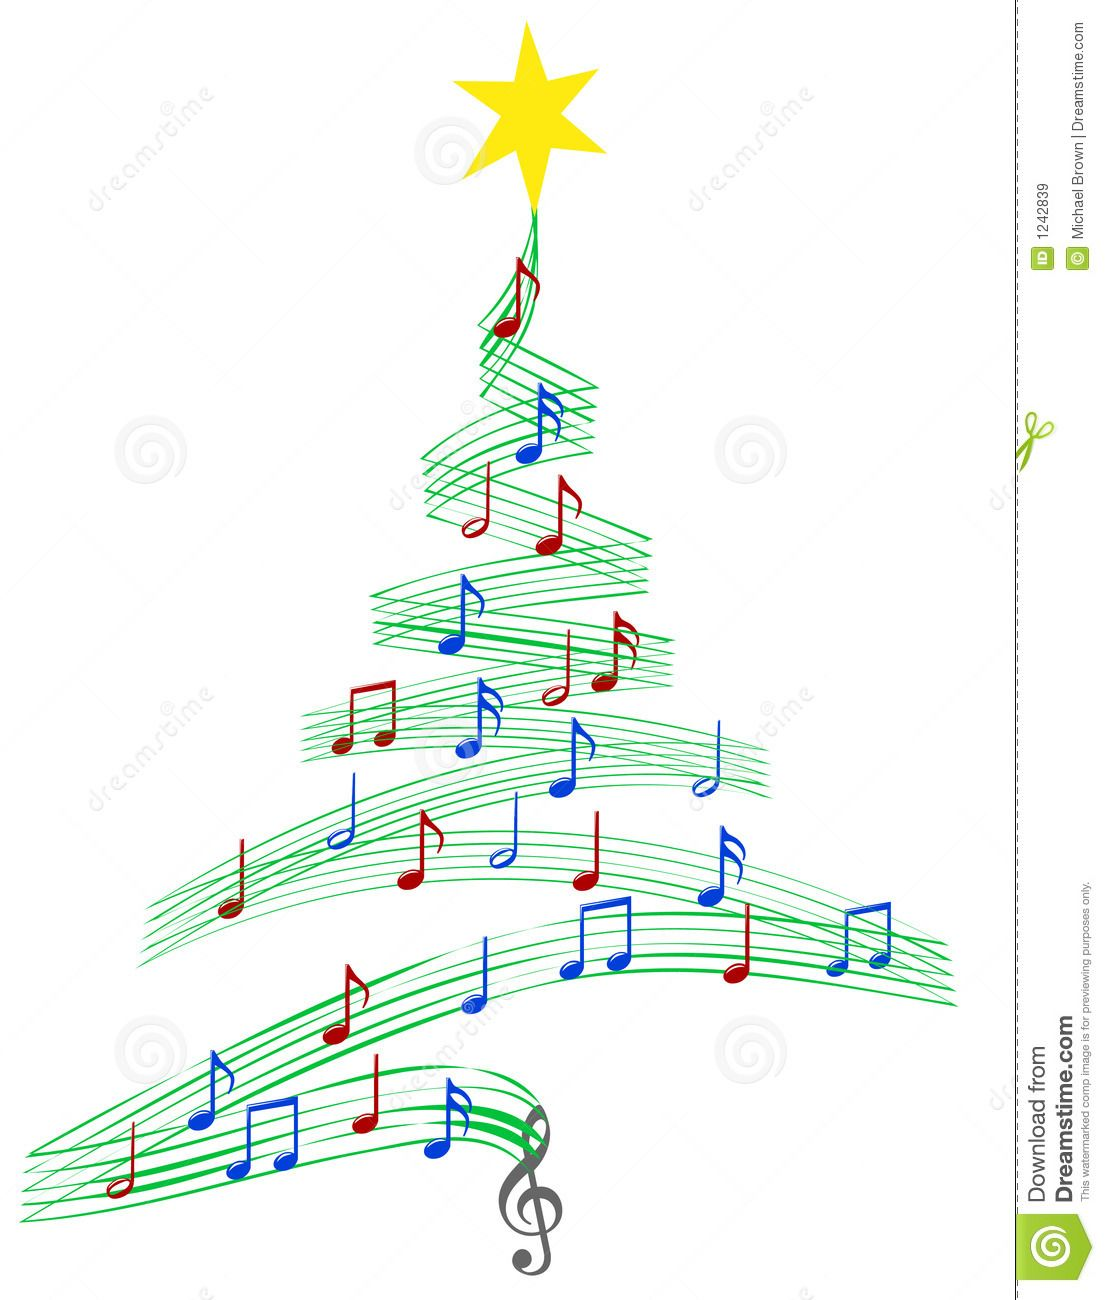 Musical symbolizing carols and. Caroling clipart christmas music notes